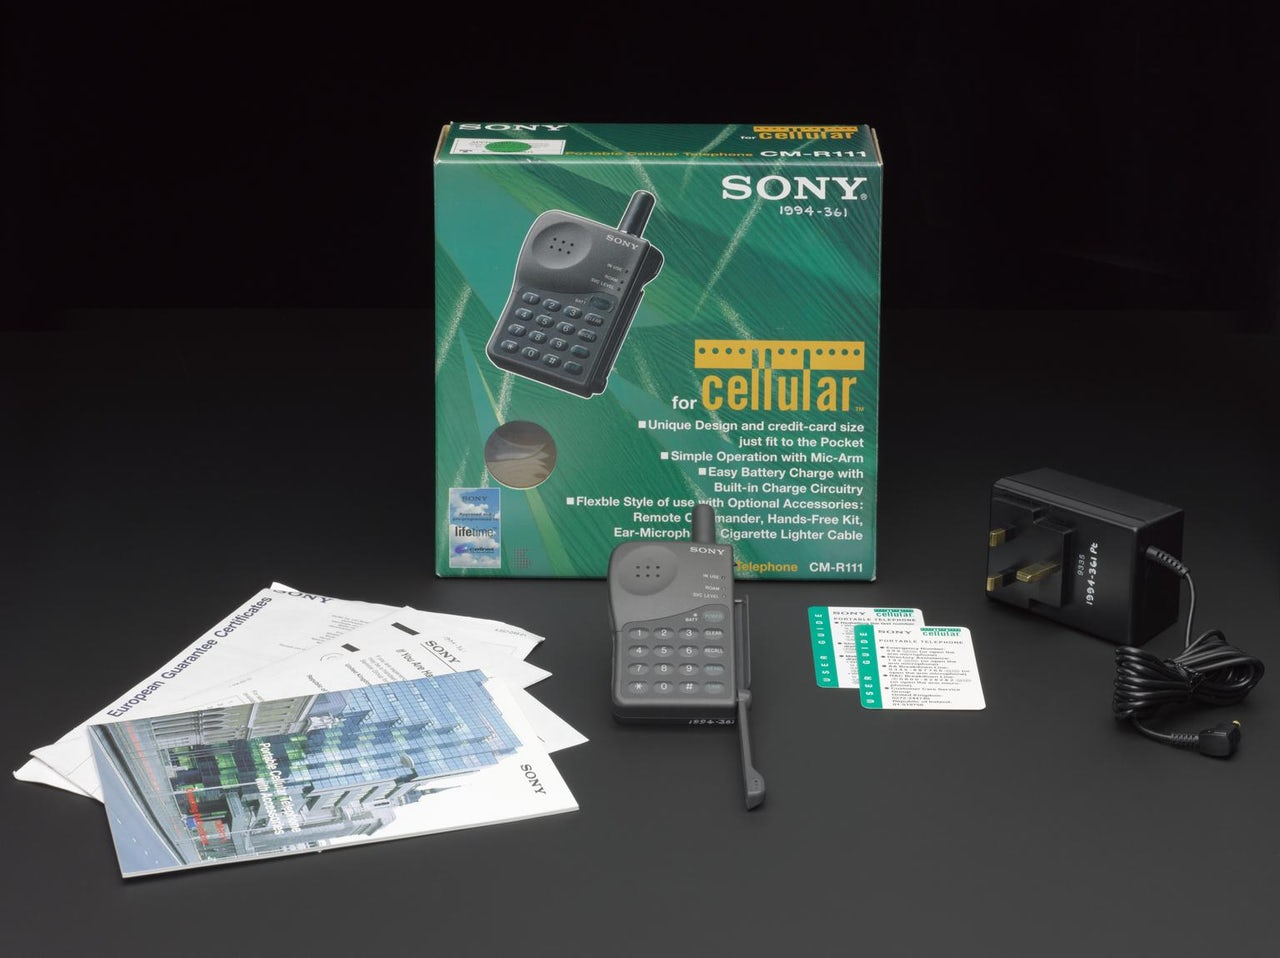 SONY CM-R111 Personal Mobile Cellnet (1994)